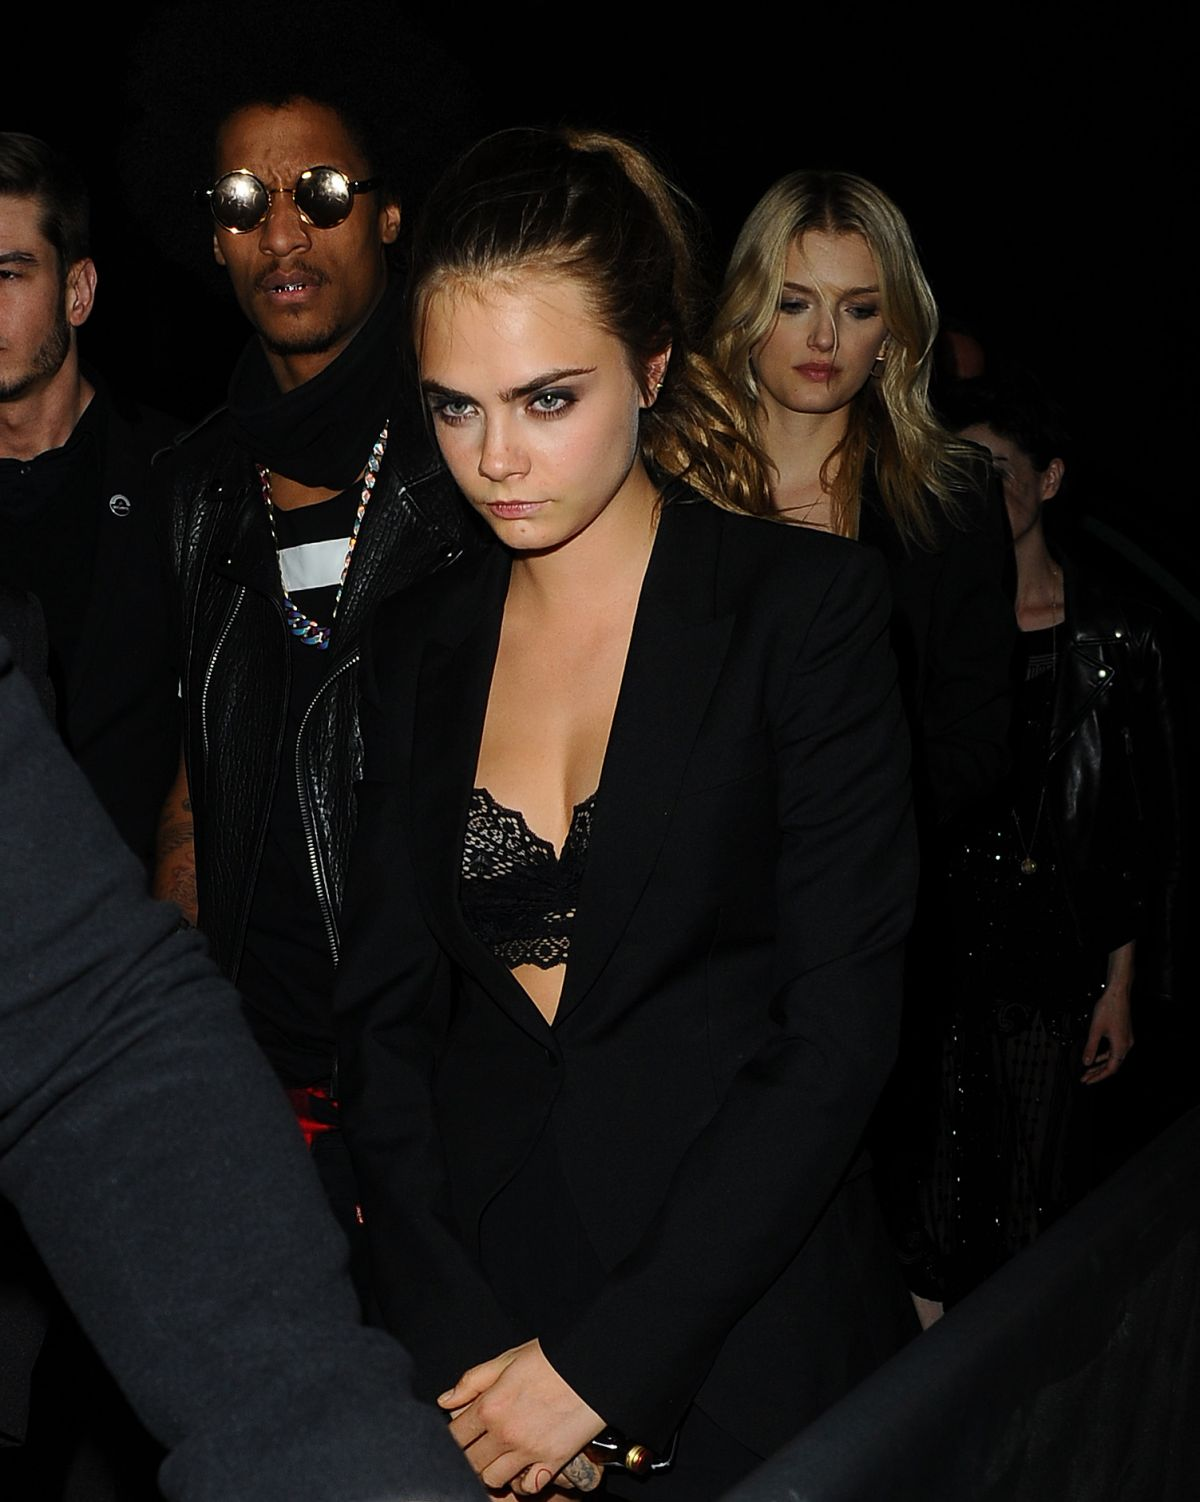 CARA DELEVINGNE Arrives at Gotham Nightclub in Cannes 5/21/15